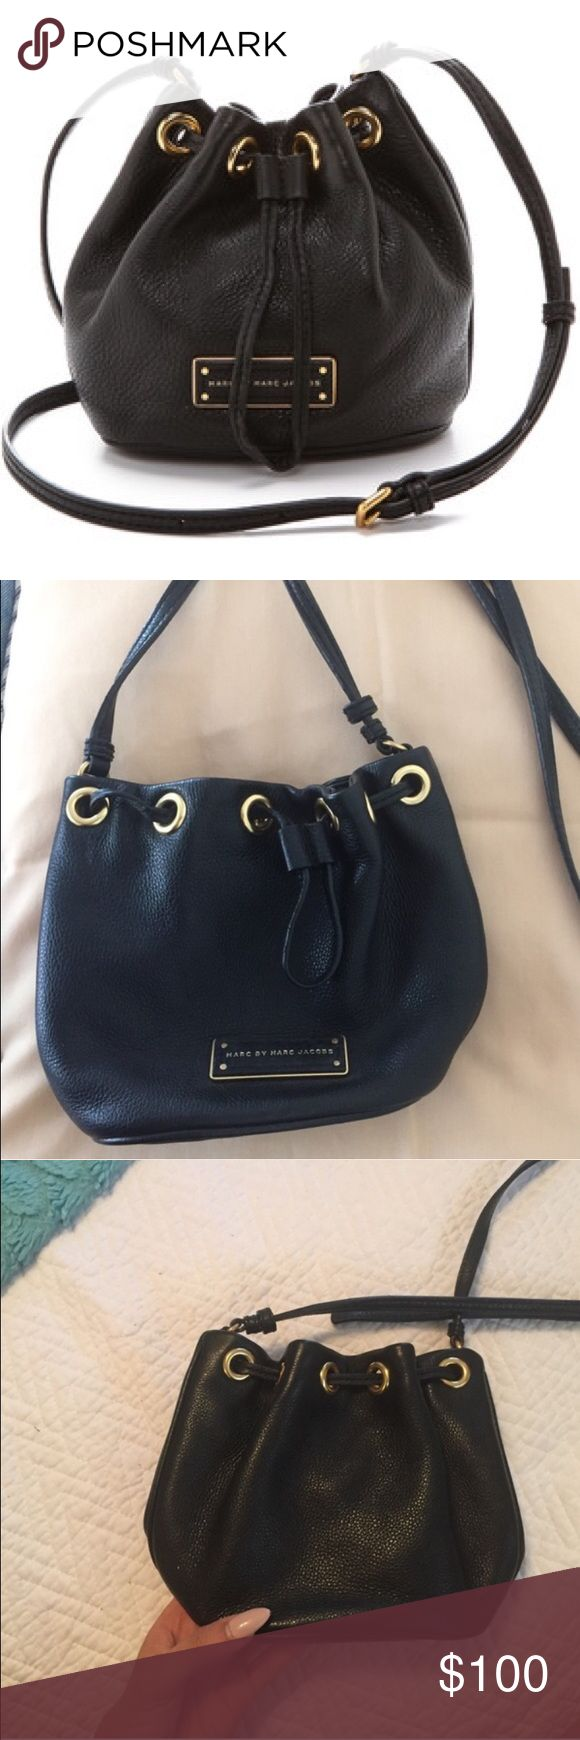 Marc by Marc Jacobs black leather bucket bag Marc by Marc Jacobs black leather bucket bag in amazing/perfect condition. Small sized bag Marc by Marc Jacobs Bags Crossbody Bags